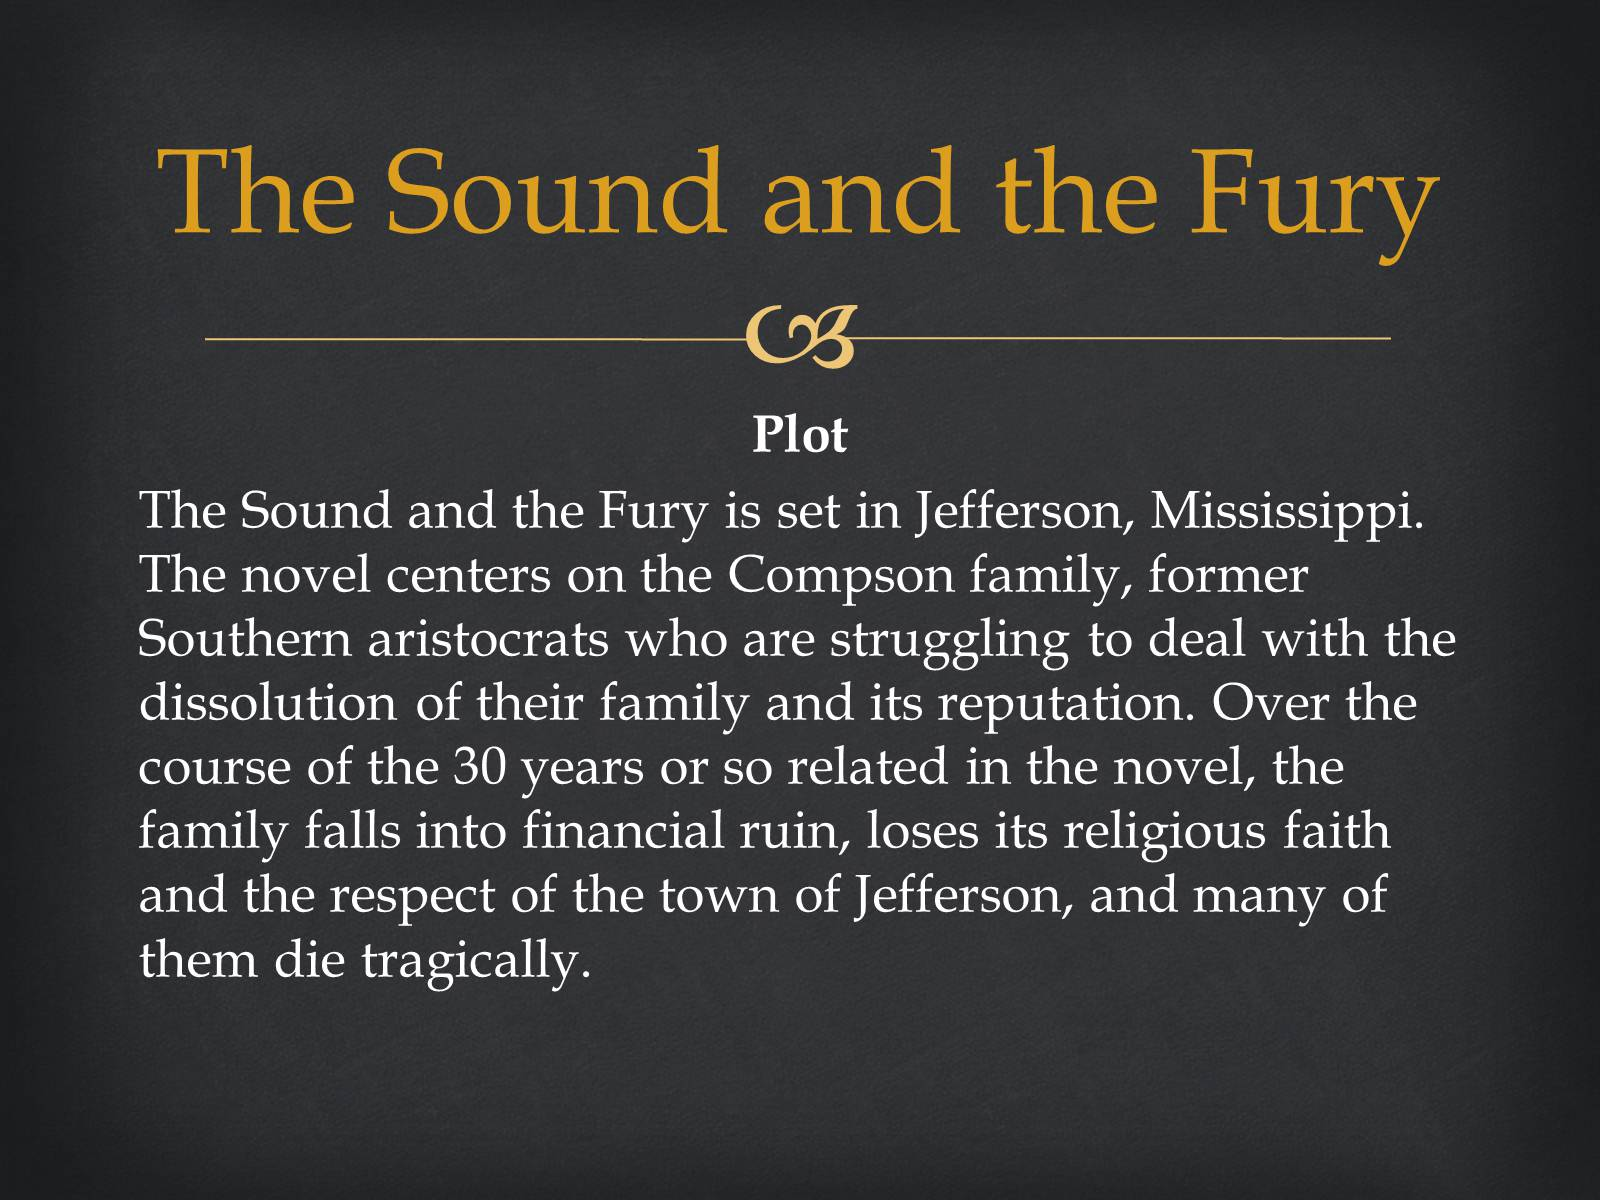 an analysis of caroline compson in the sound and the fury by william faulkner The sound and the fury william faulkner buy  character analysis quentin compson  previous mrs caroline compson.